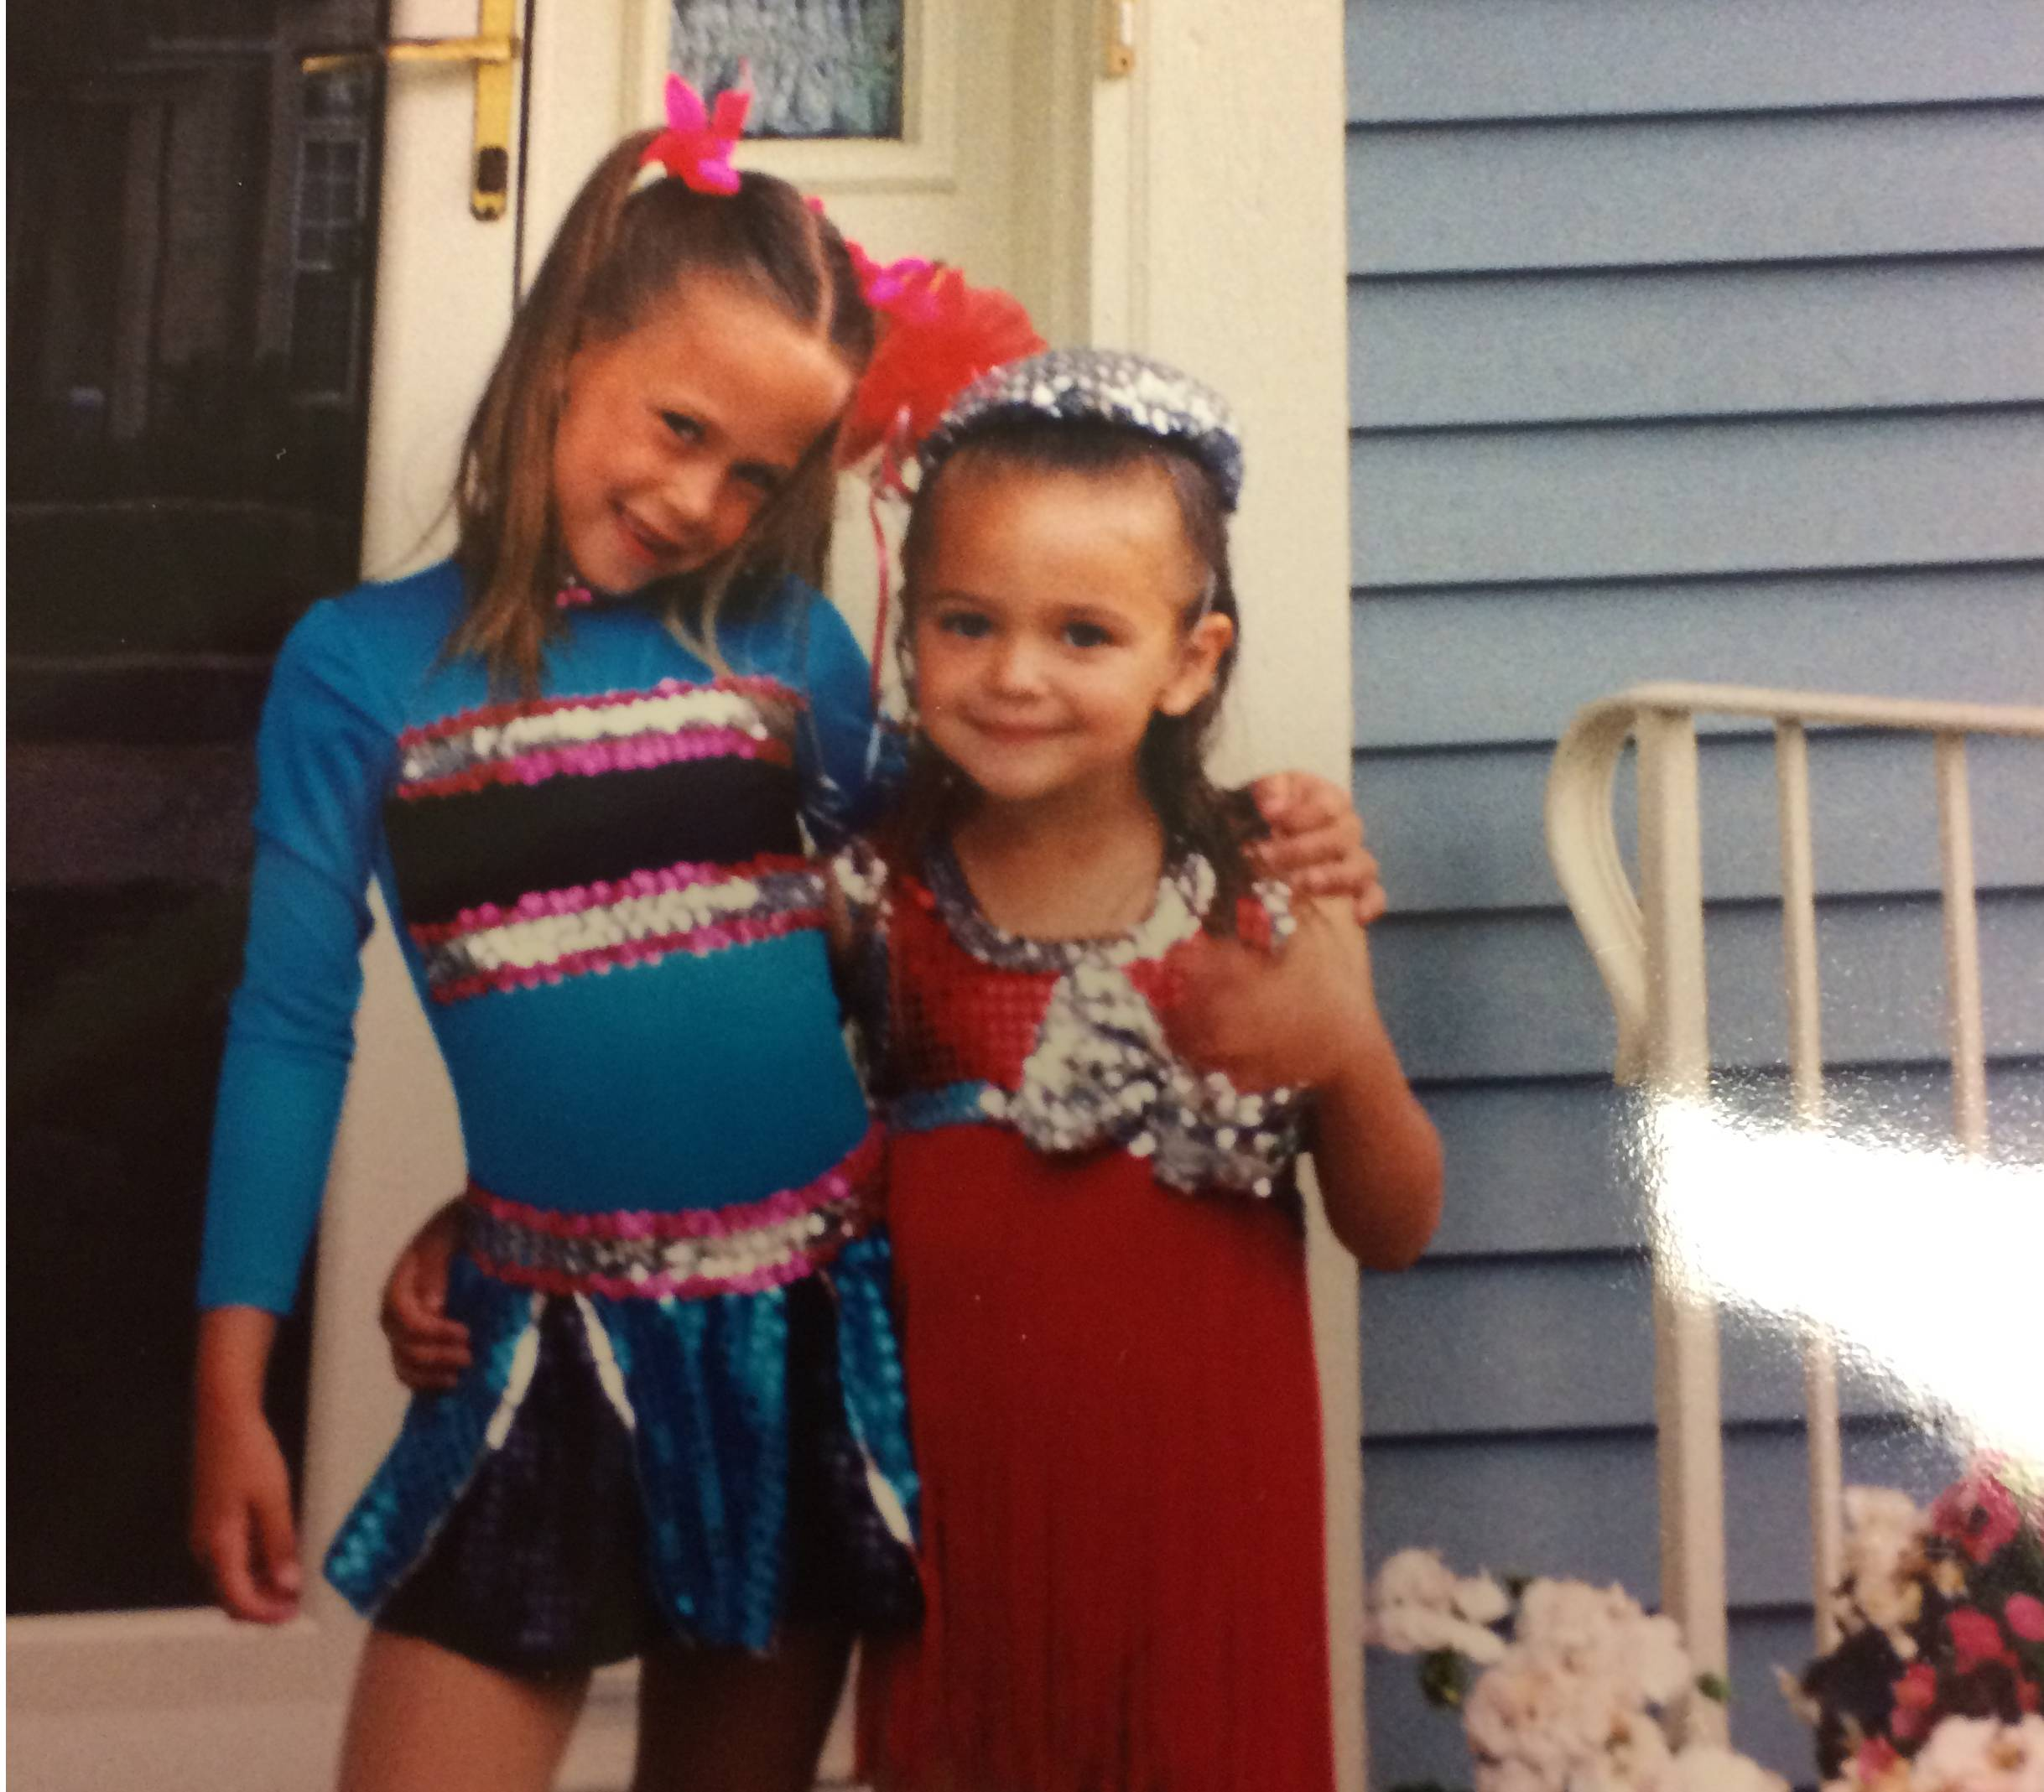 Alexis, in blue, and her sister Ariel pose in their dance costumes.